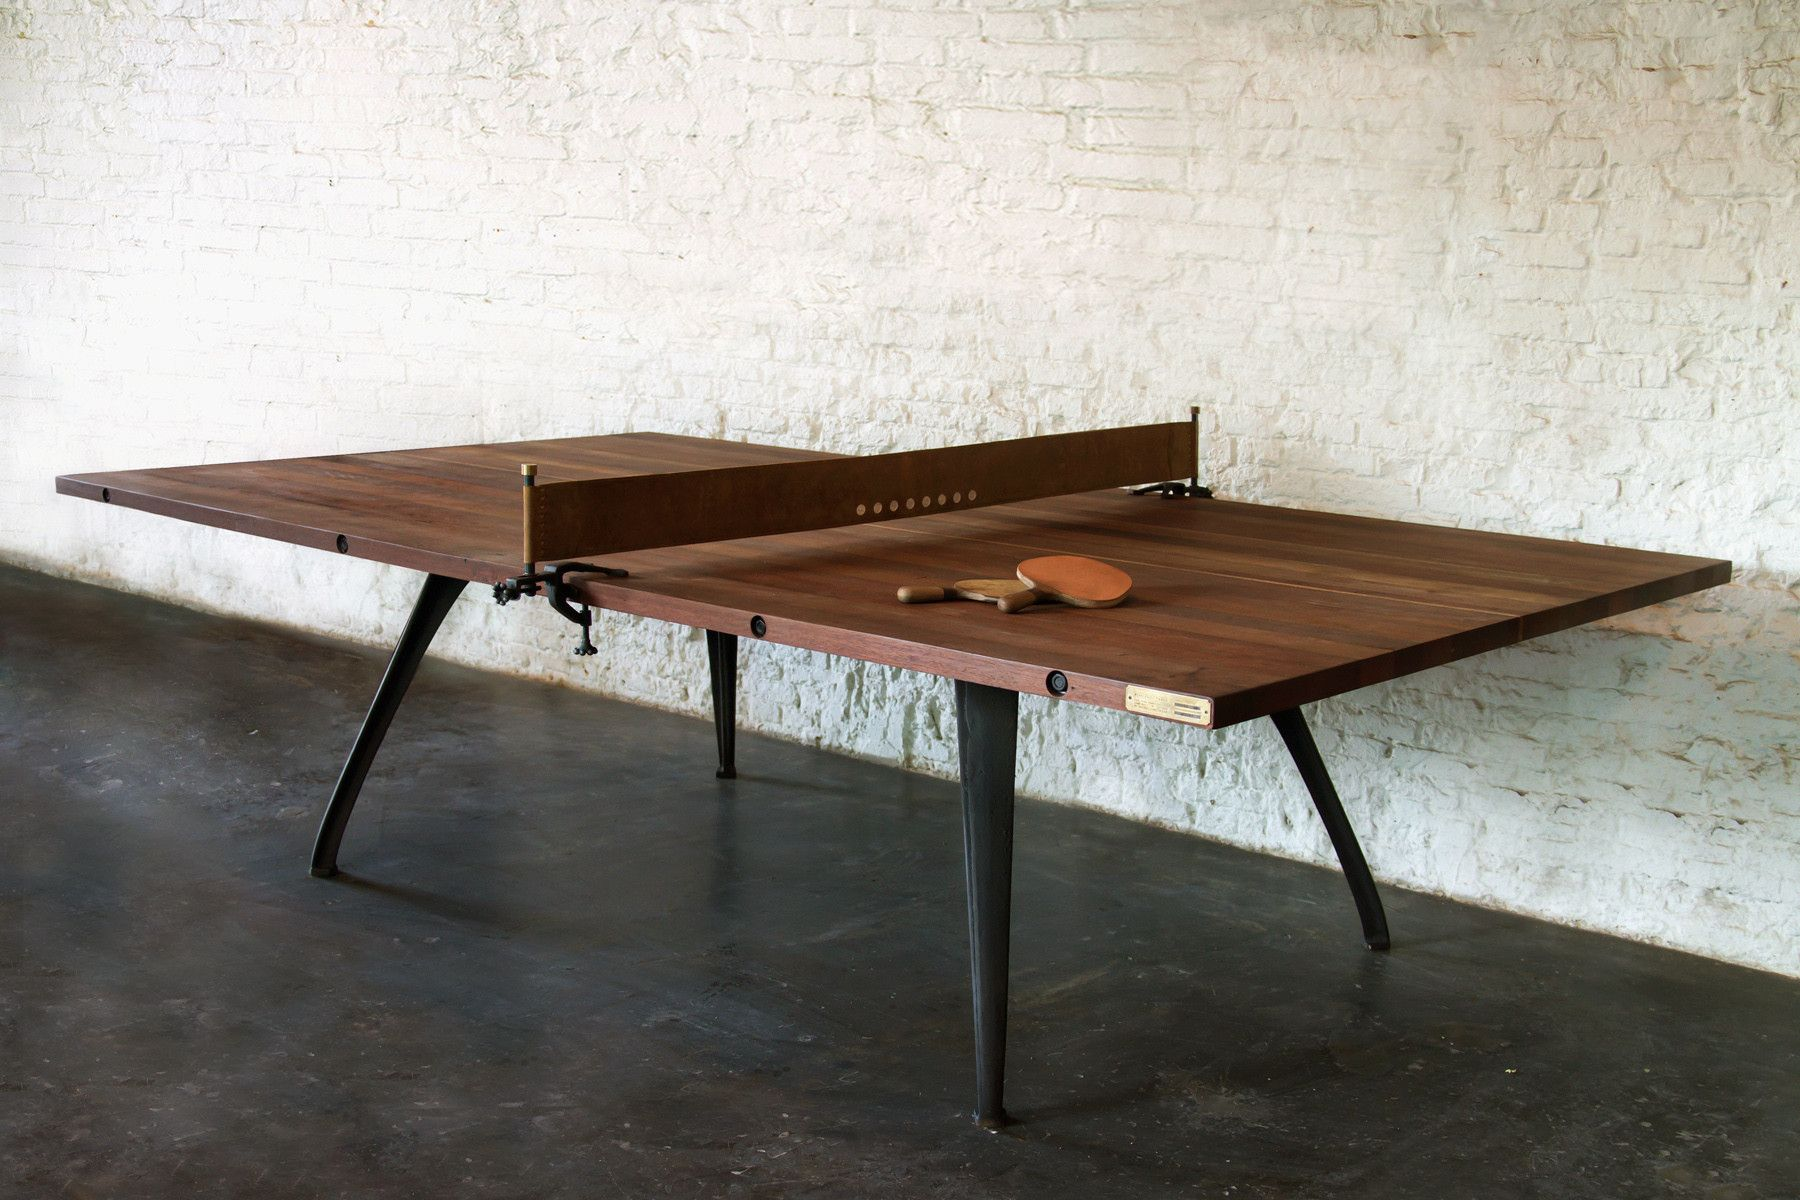 Hello Vietnam Industrial Chic Design Irwin Weiner Interiors Ping Pong Table Modern Dining Room Tables Dining Table